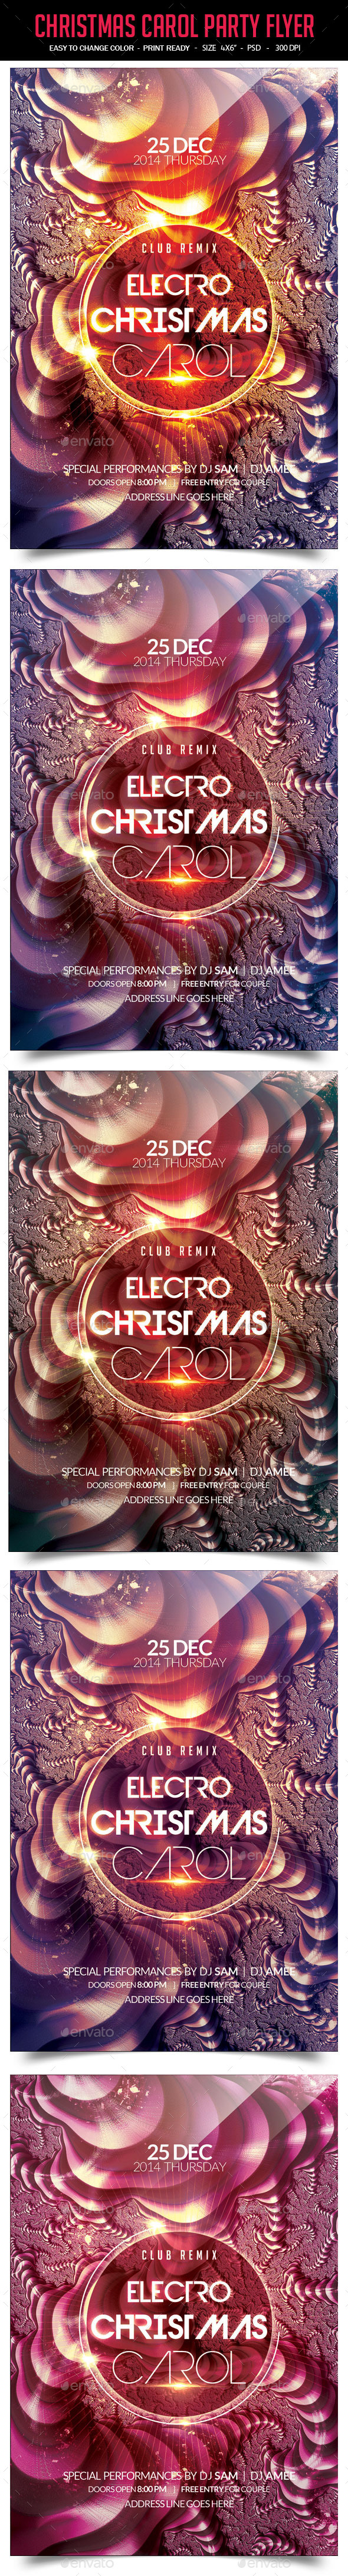 Electro Christmas Carol Party Flyer - Clubs & Parties Events